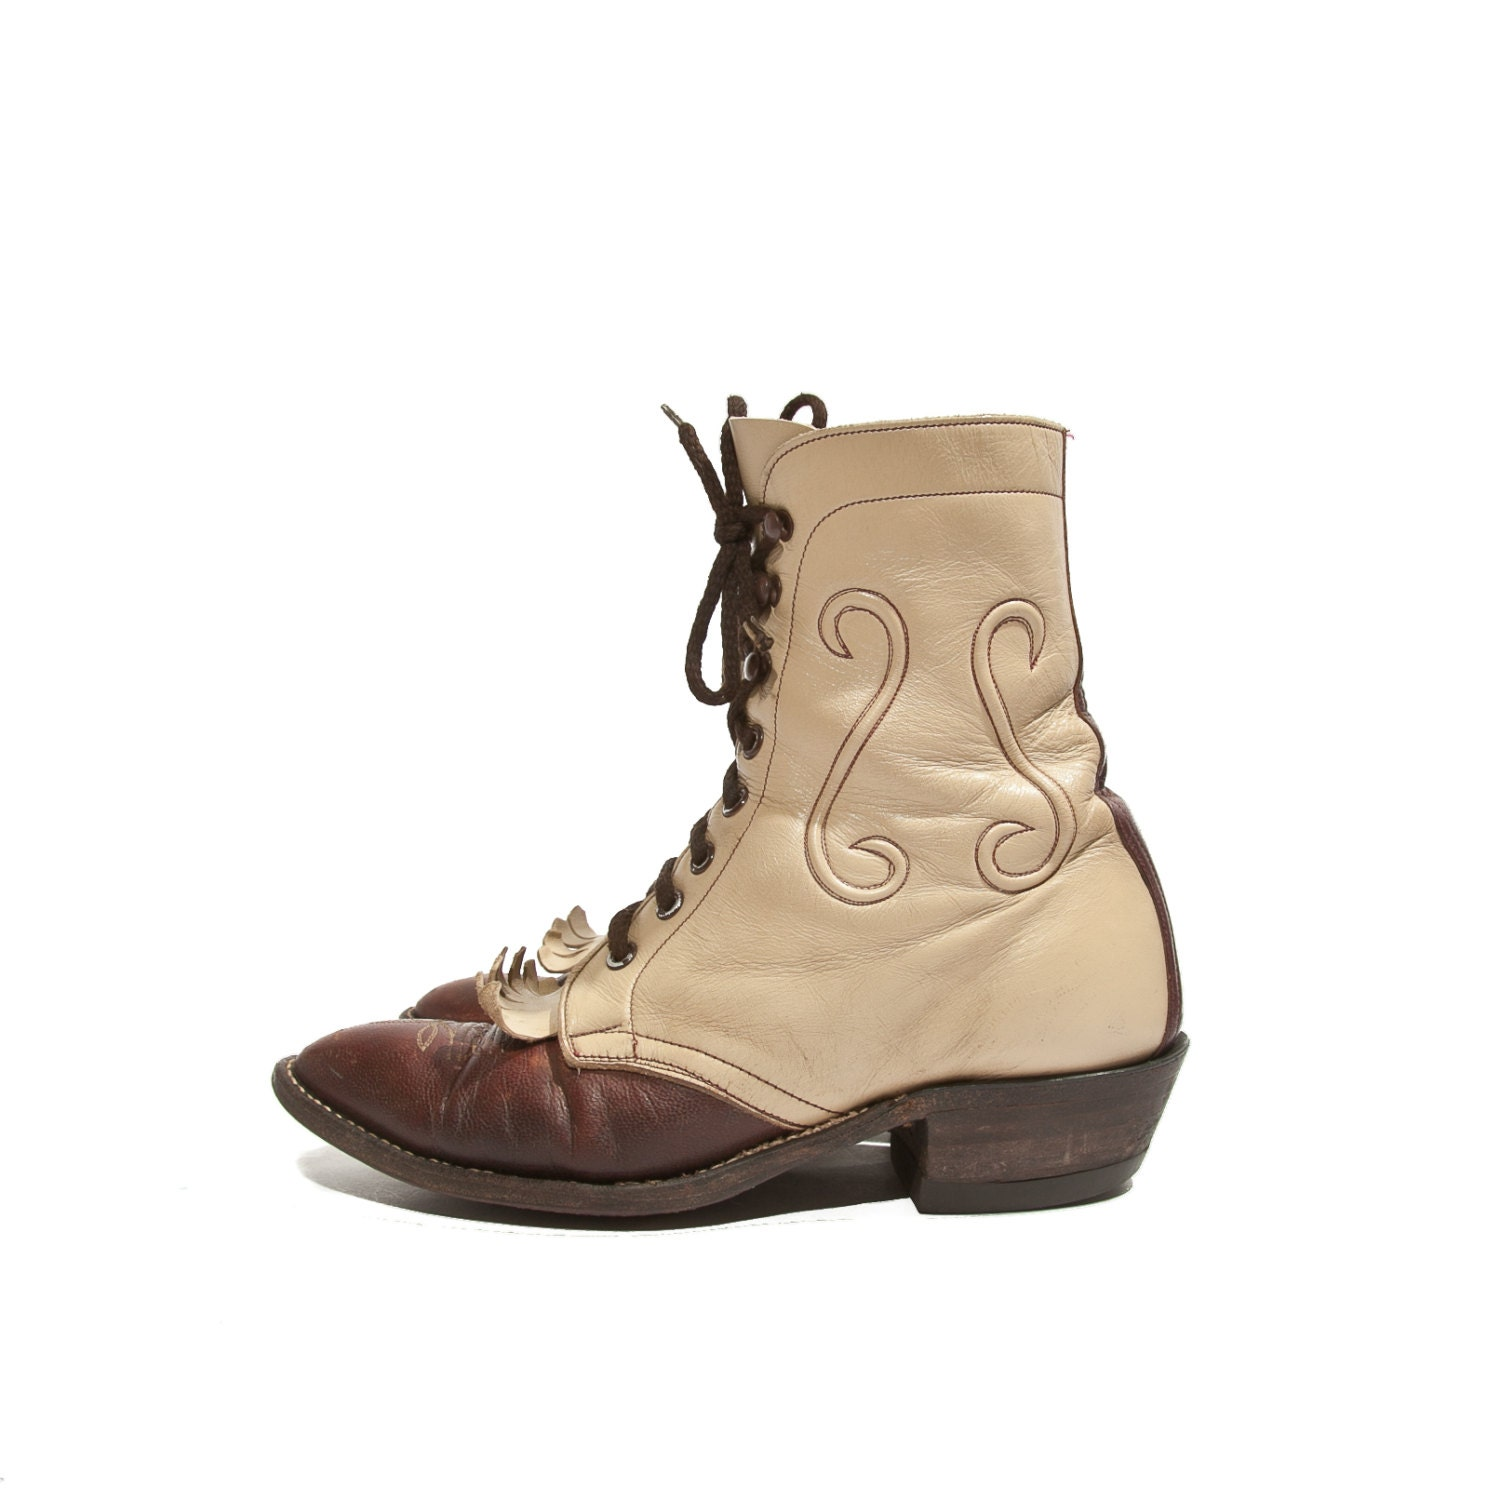 Simple Whether Its An Anklehiding, Kidleather Boot With A Louis XV Heel From The LateVictorian Era, Or A Thighhigh, Skintight, Stephen Sprouse Stiletto From The 1980s, Womens Boots Have Always Been About More Than Mere Utility They Can